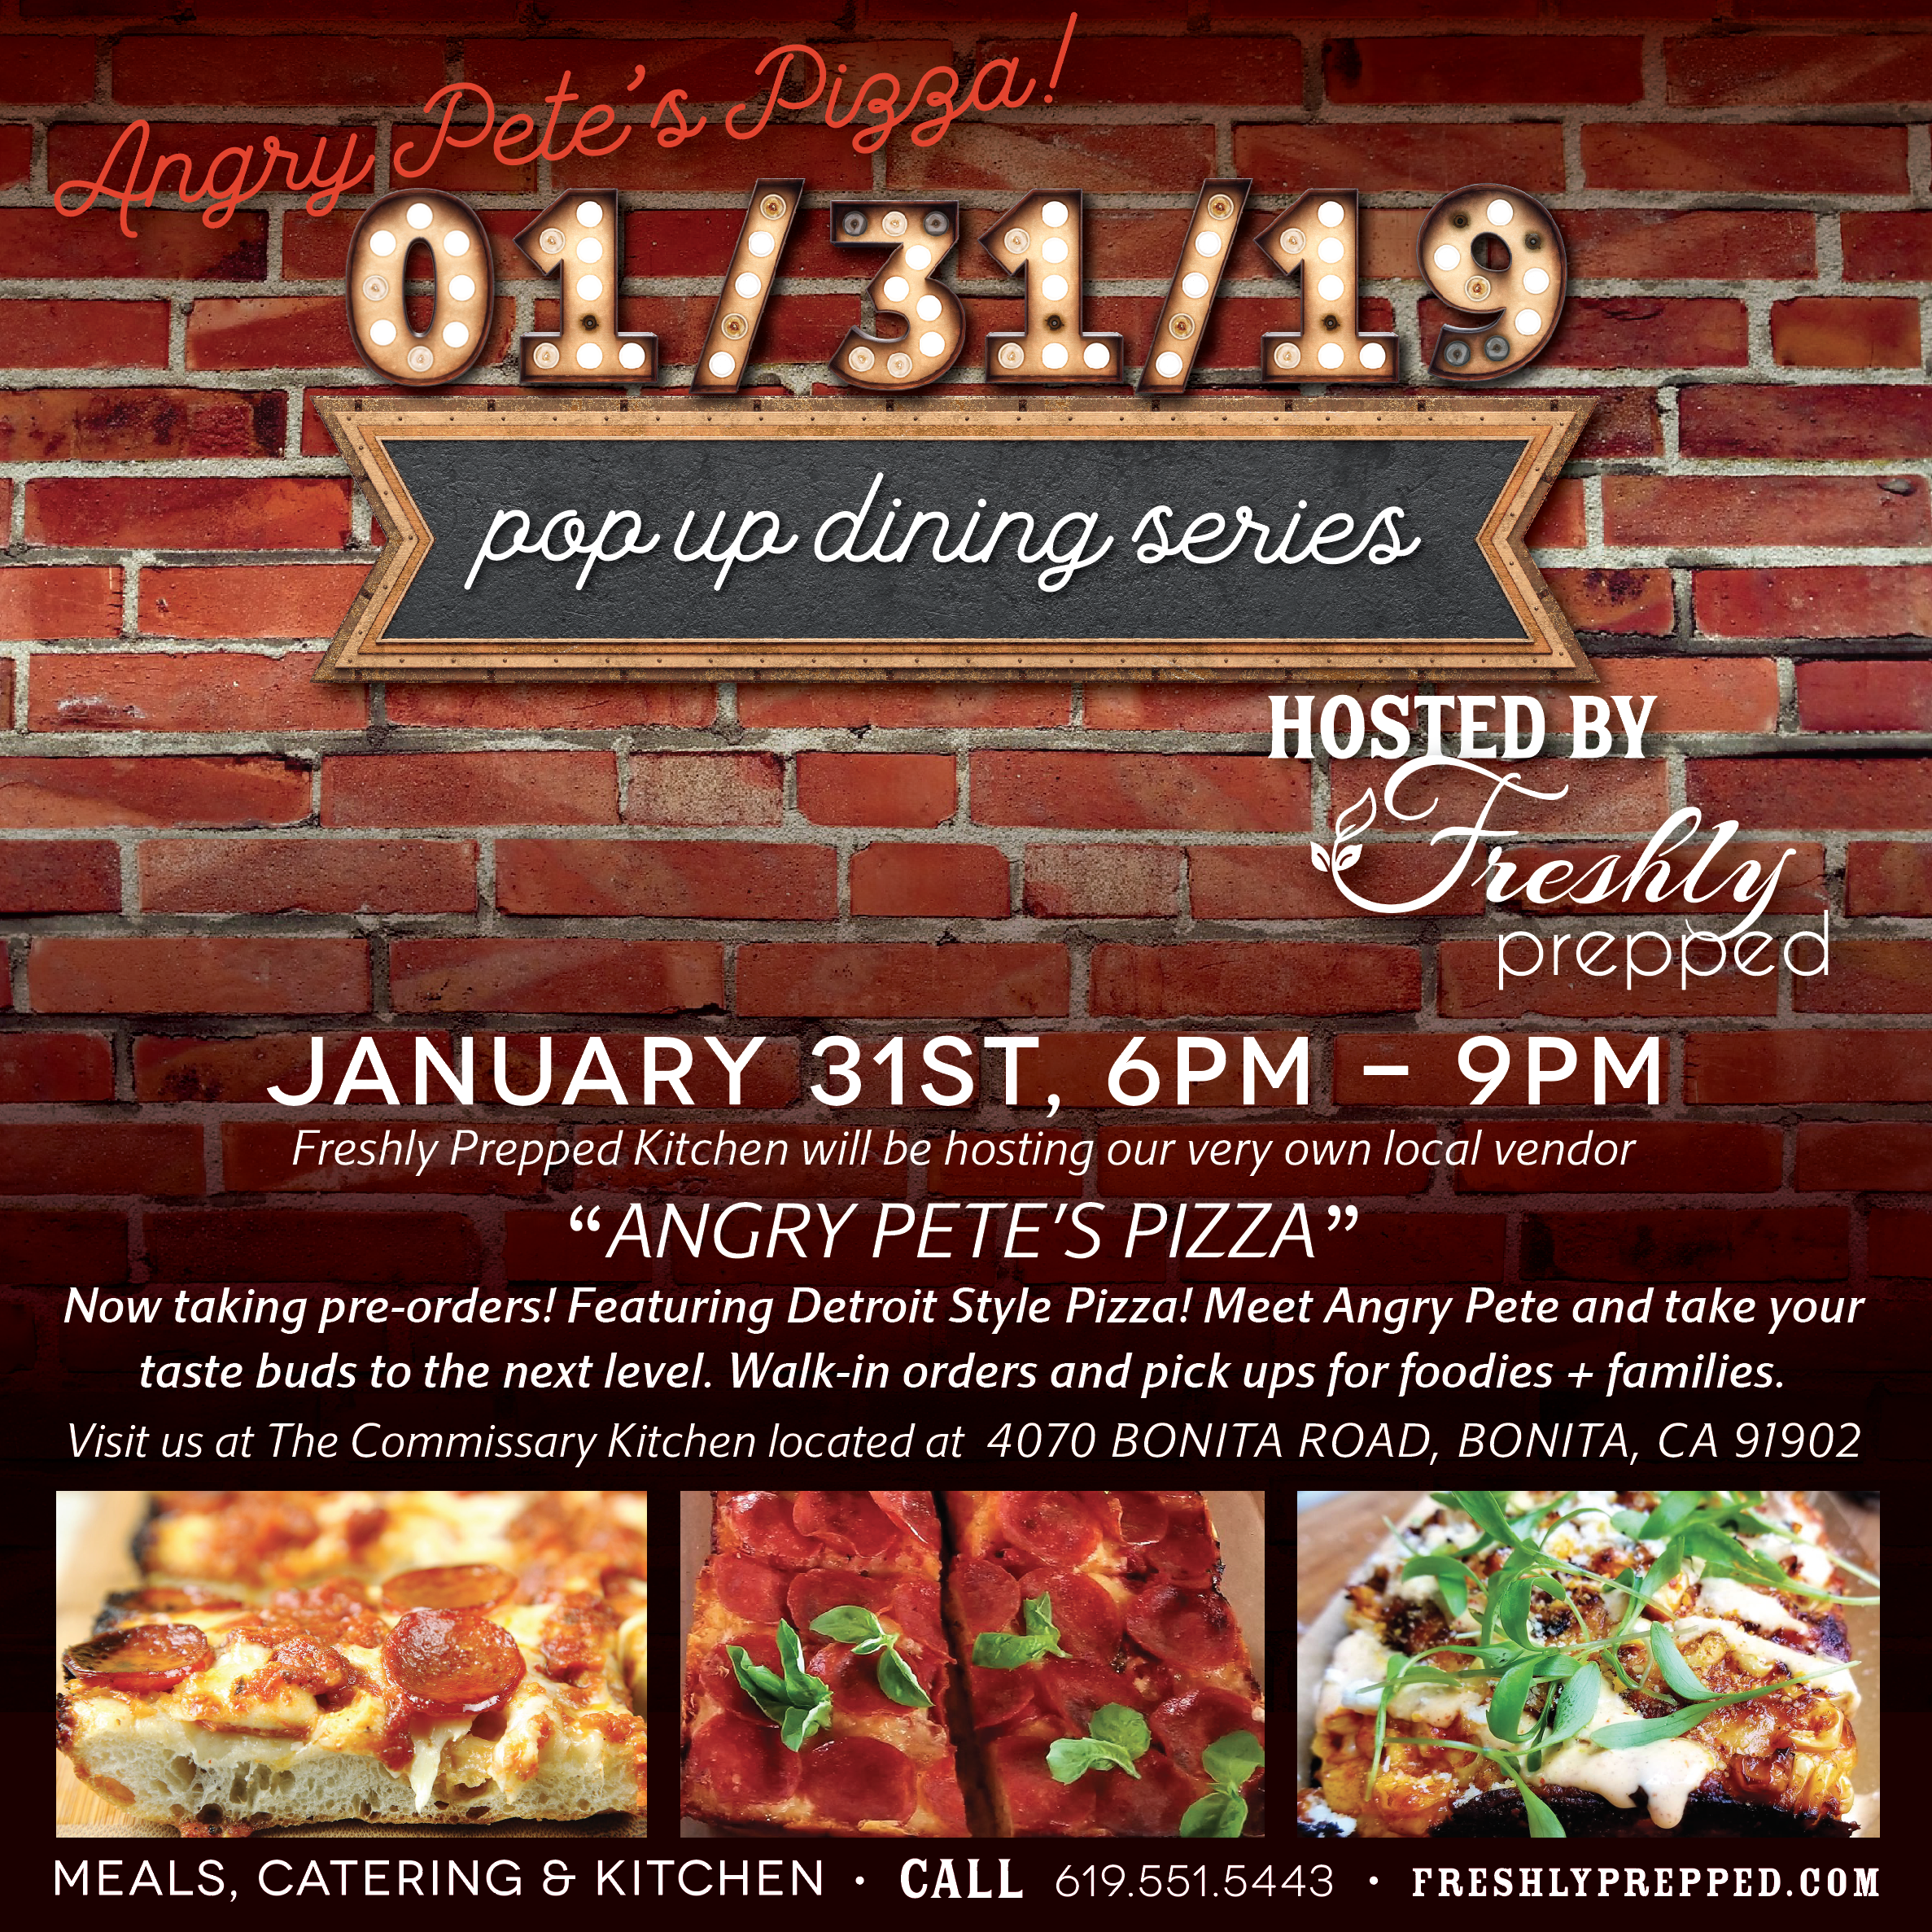 Angry Pete's Pizza